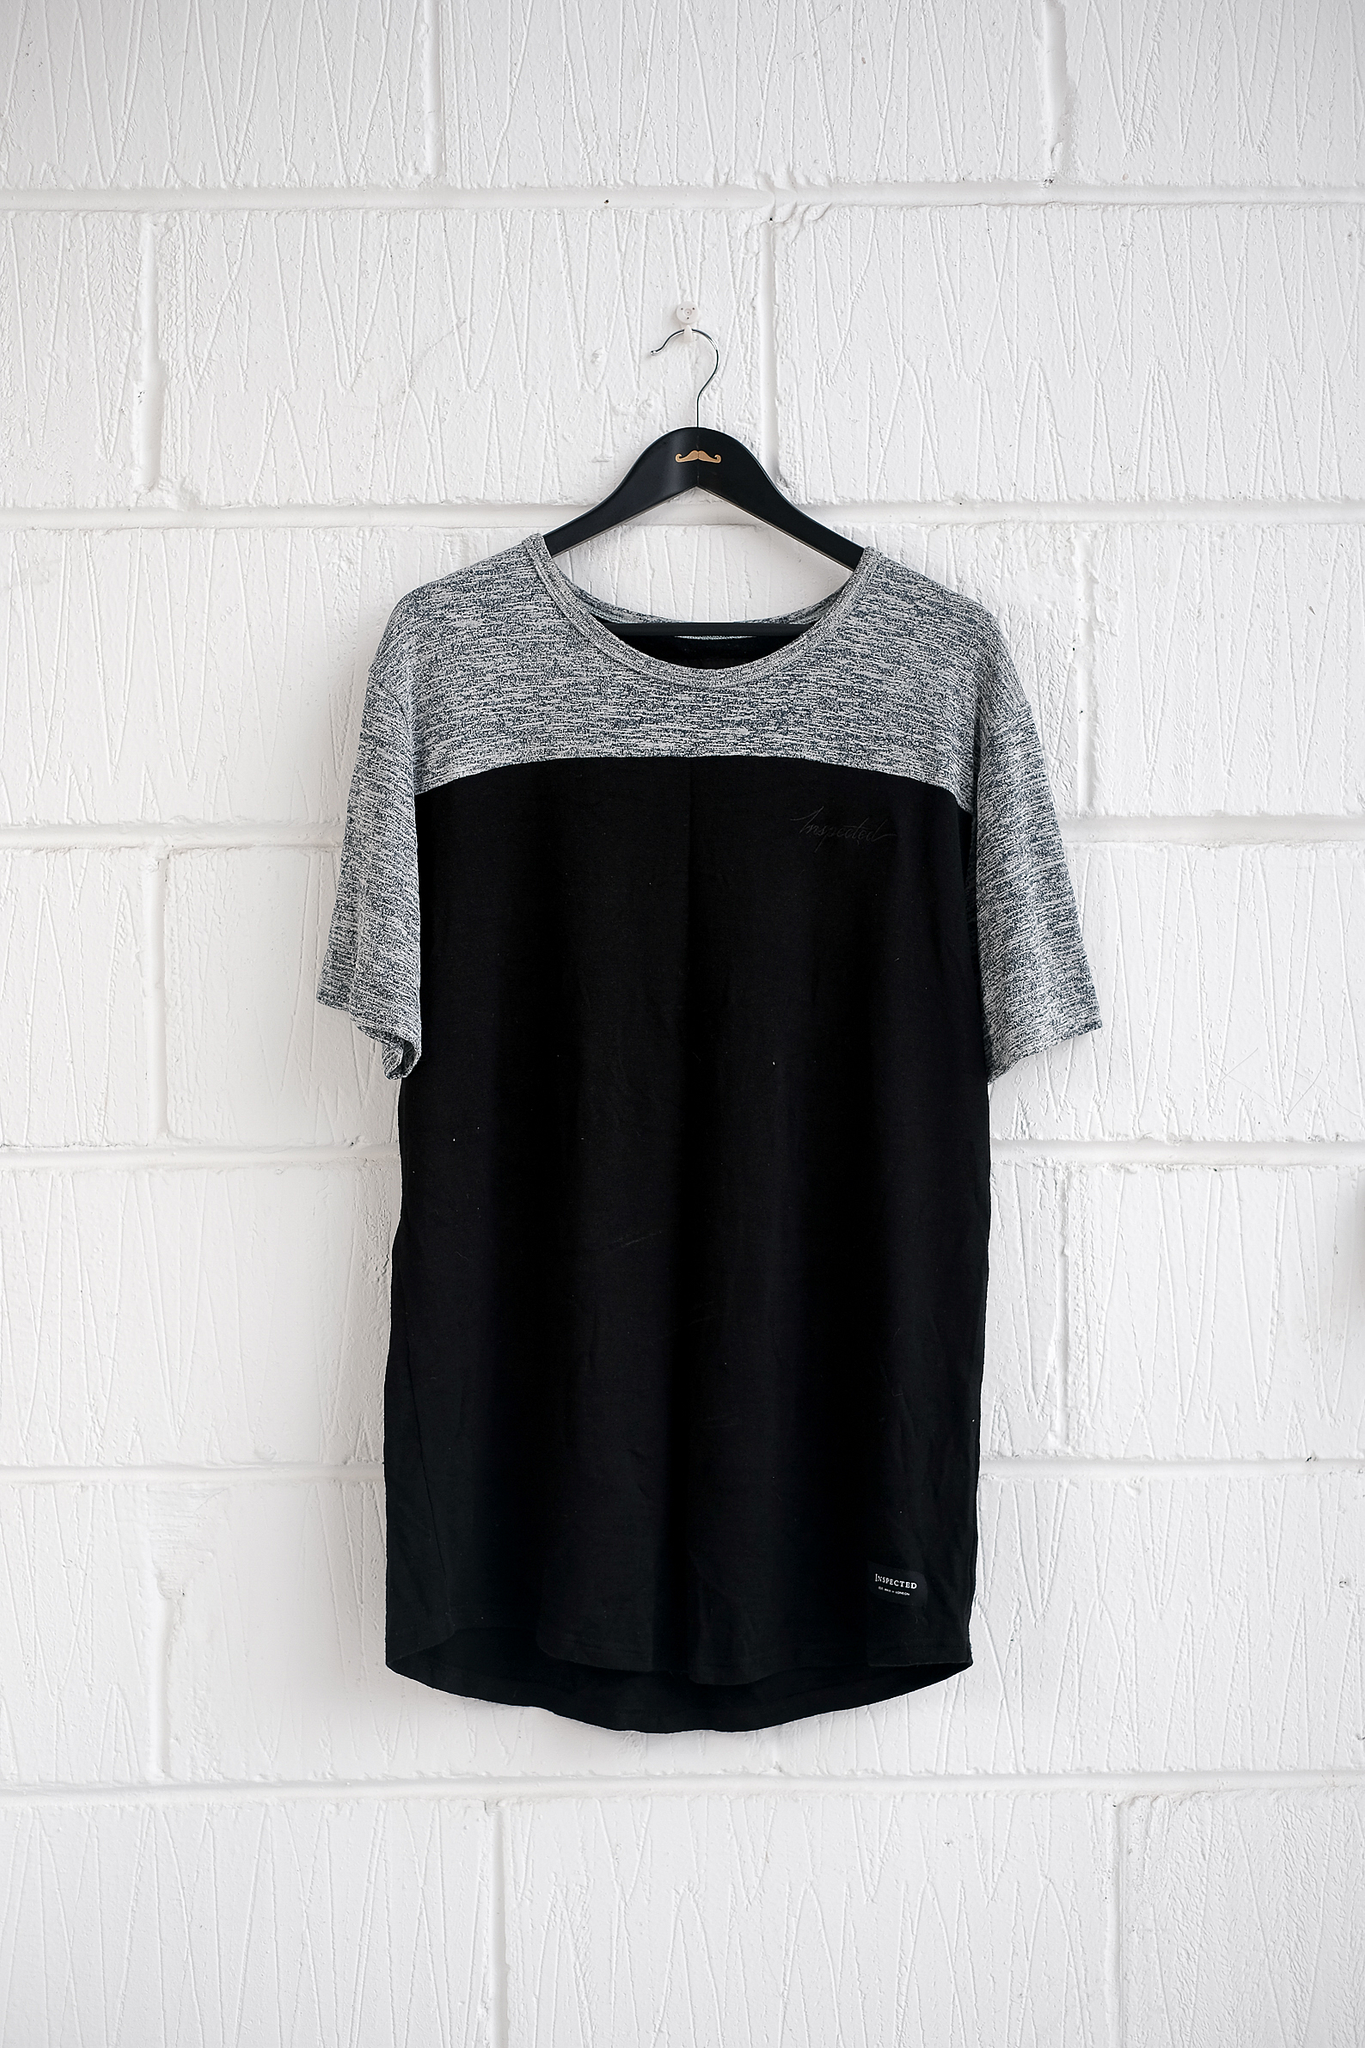 SAMPLE T-SHIRT — SEGMENT BLACK